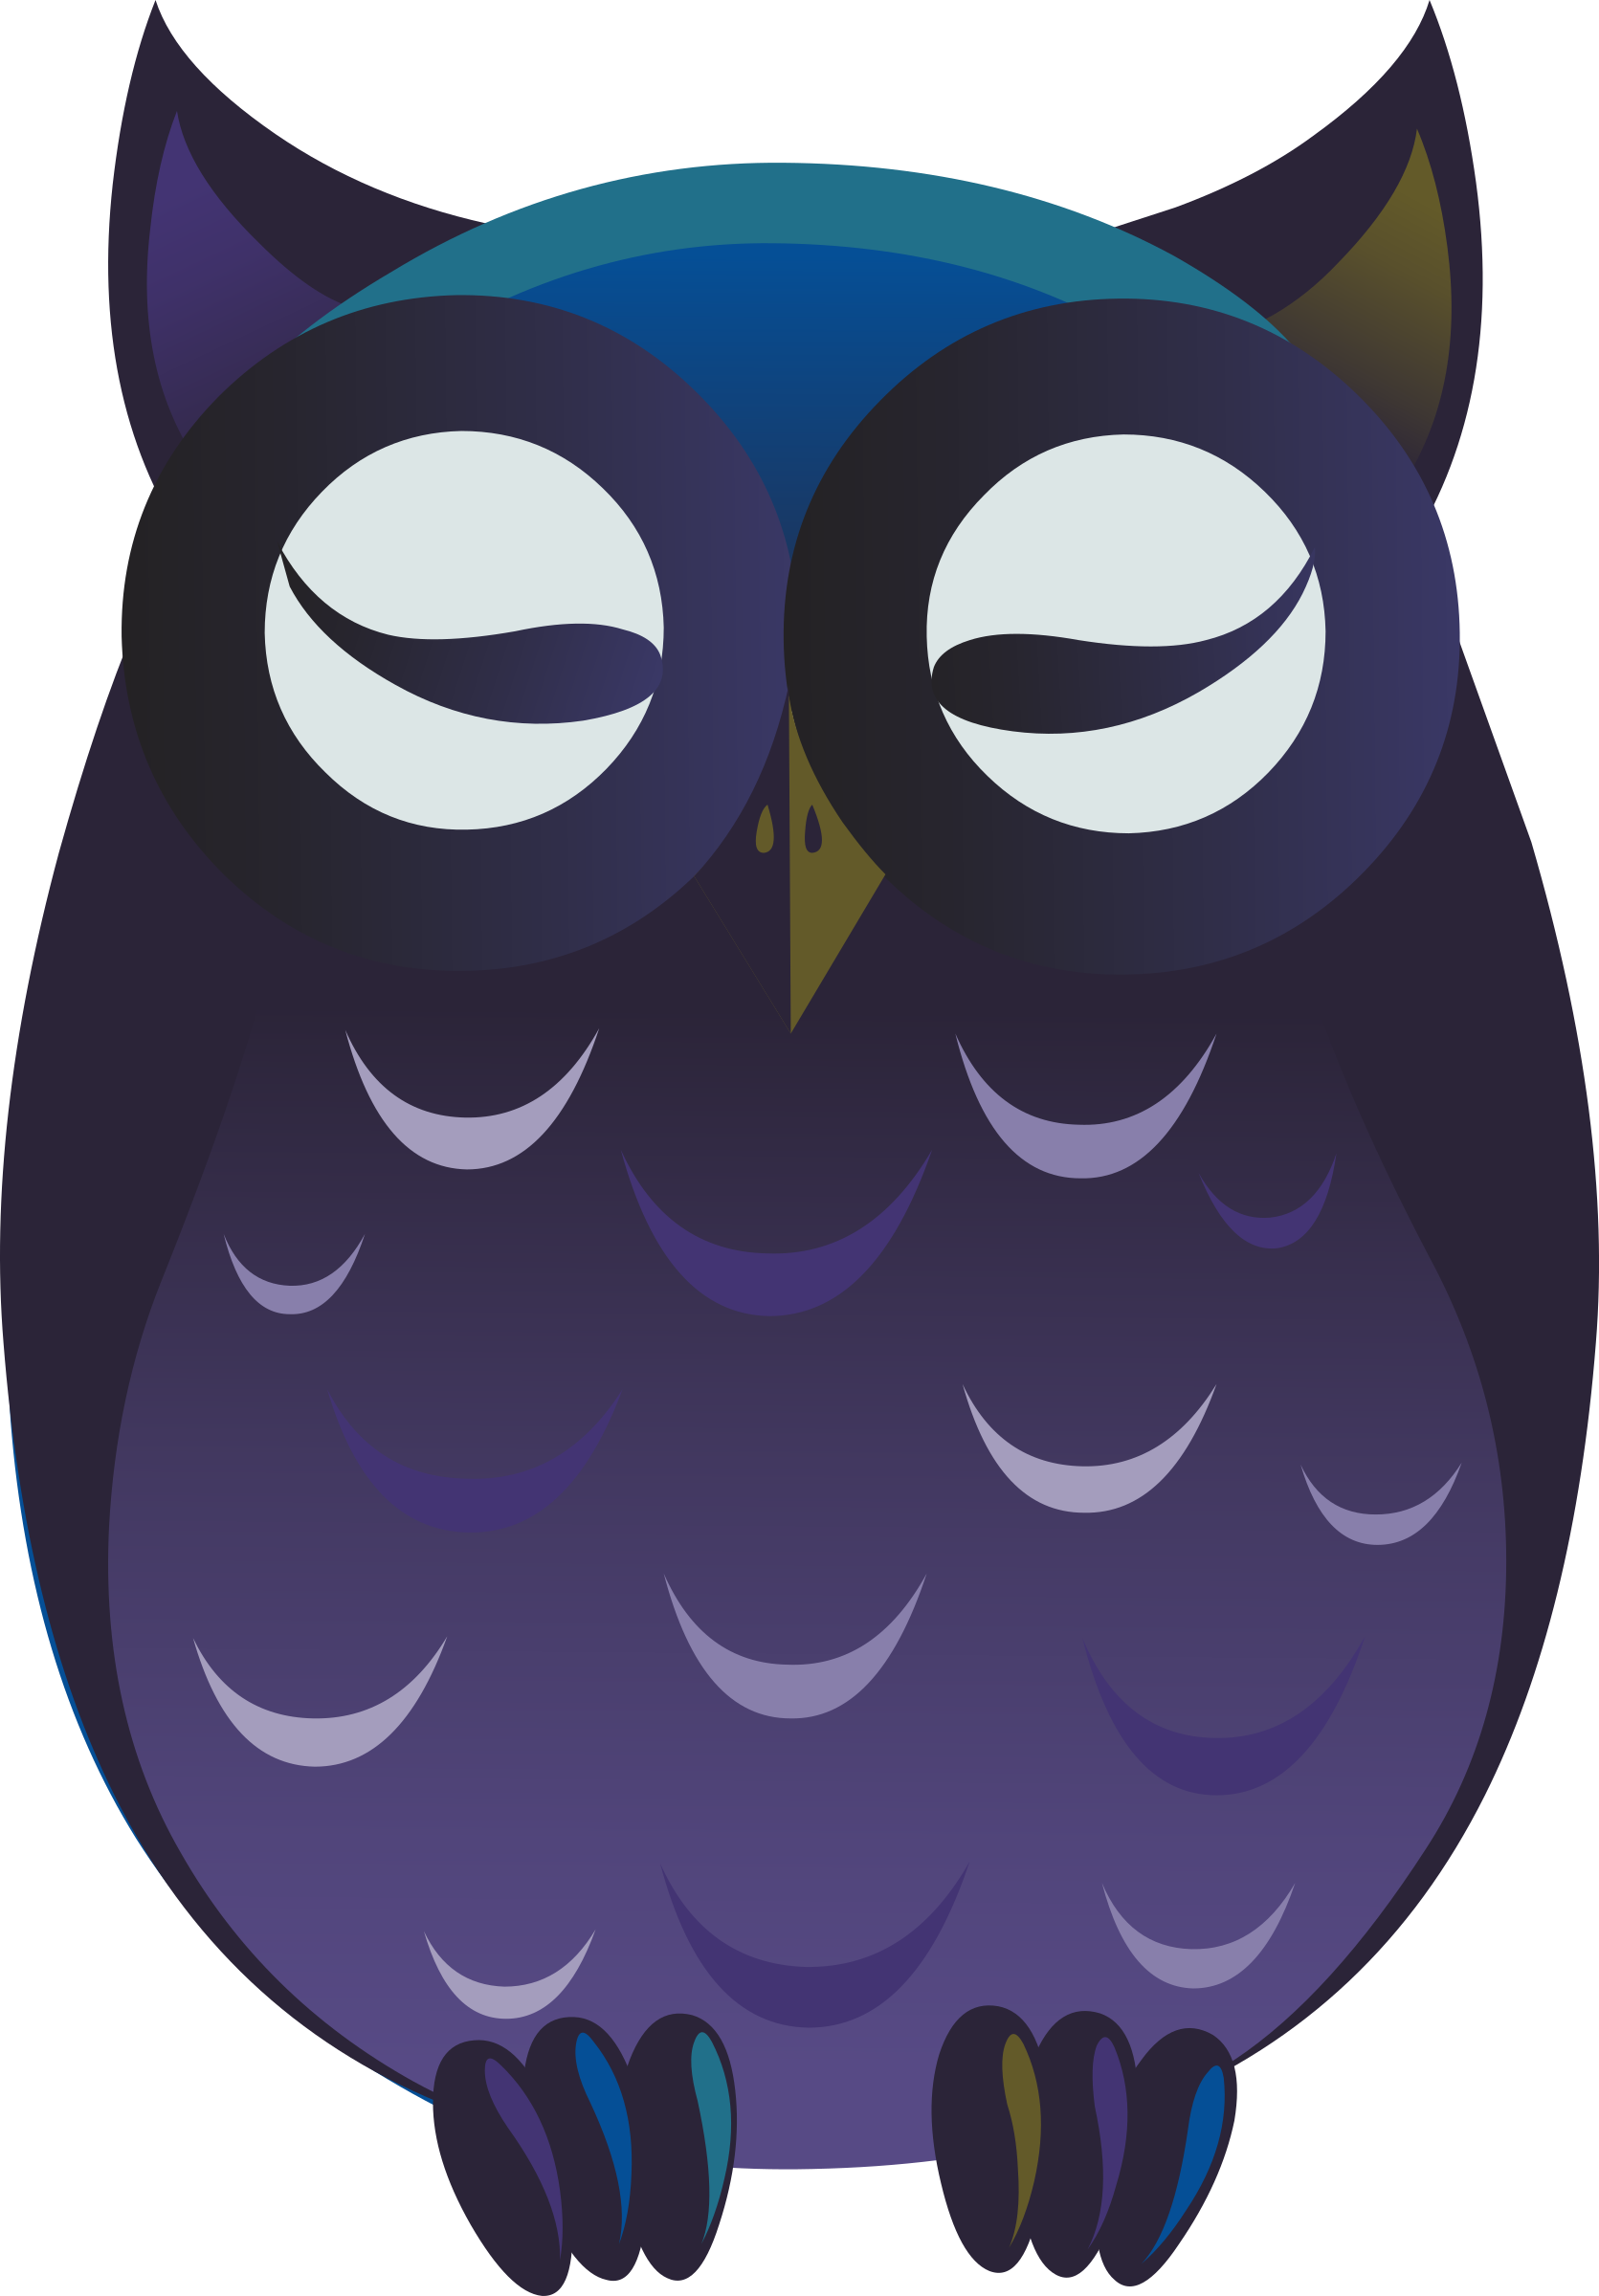 Owl reading a book clipart clipart freeuse download Bart owl clipart - Clipground clipart freeuse download